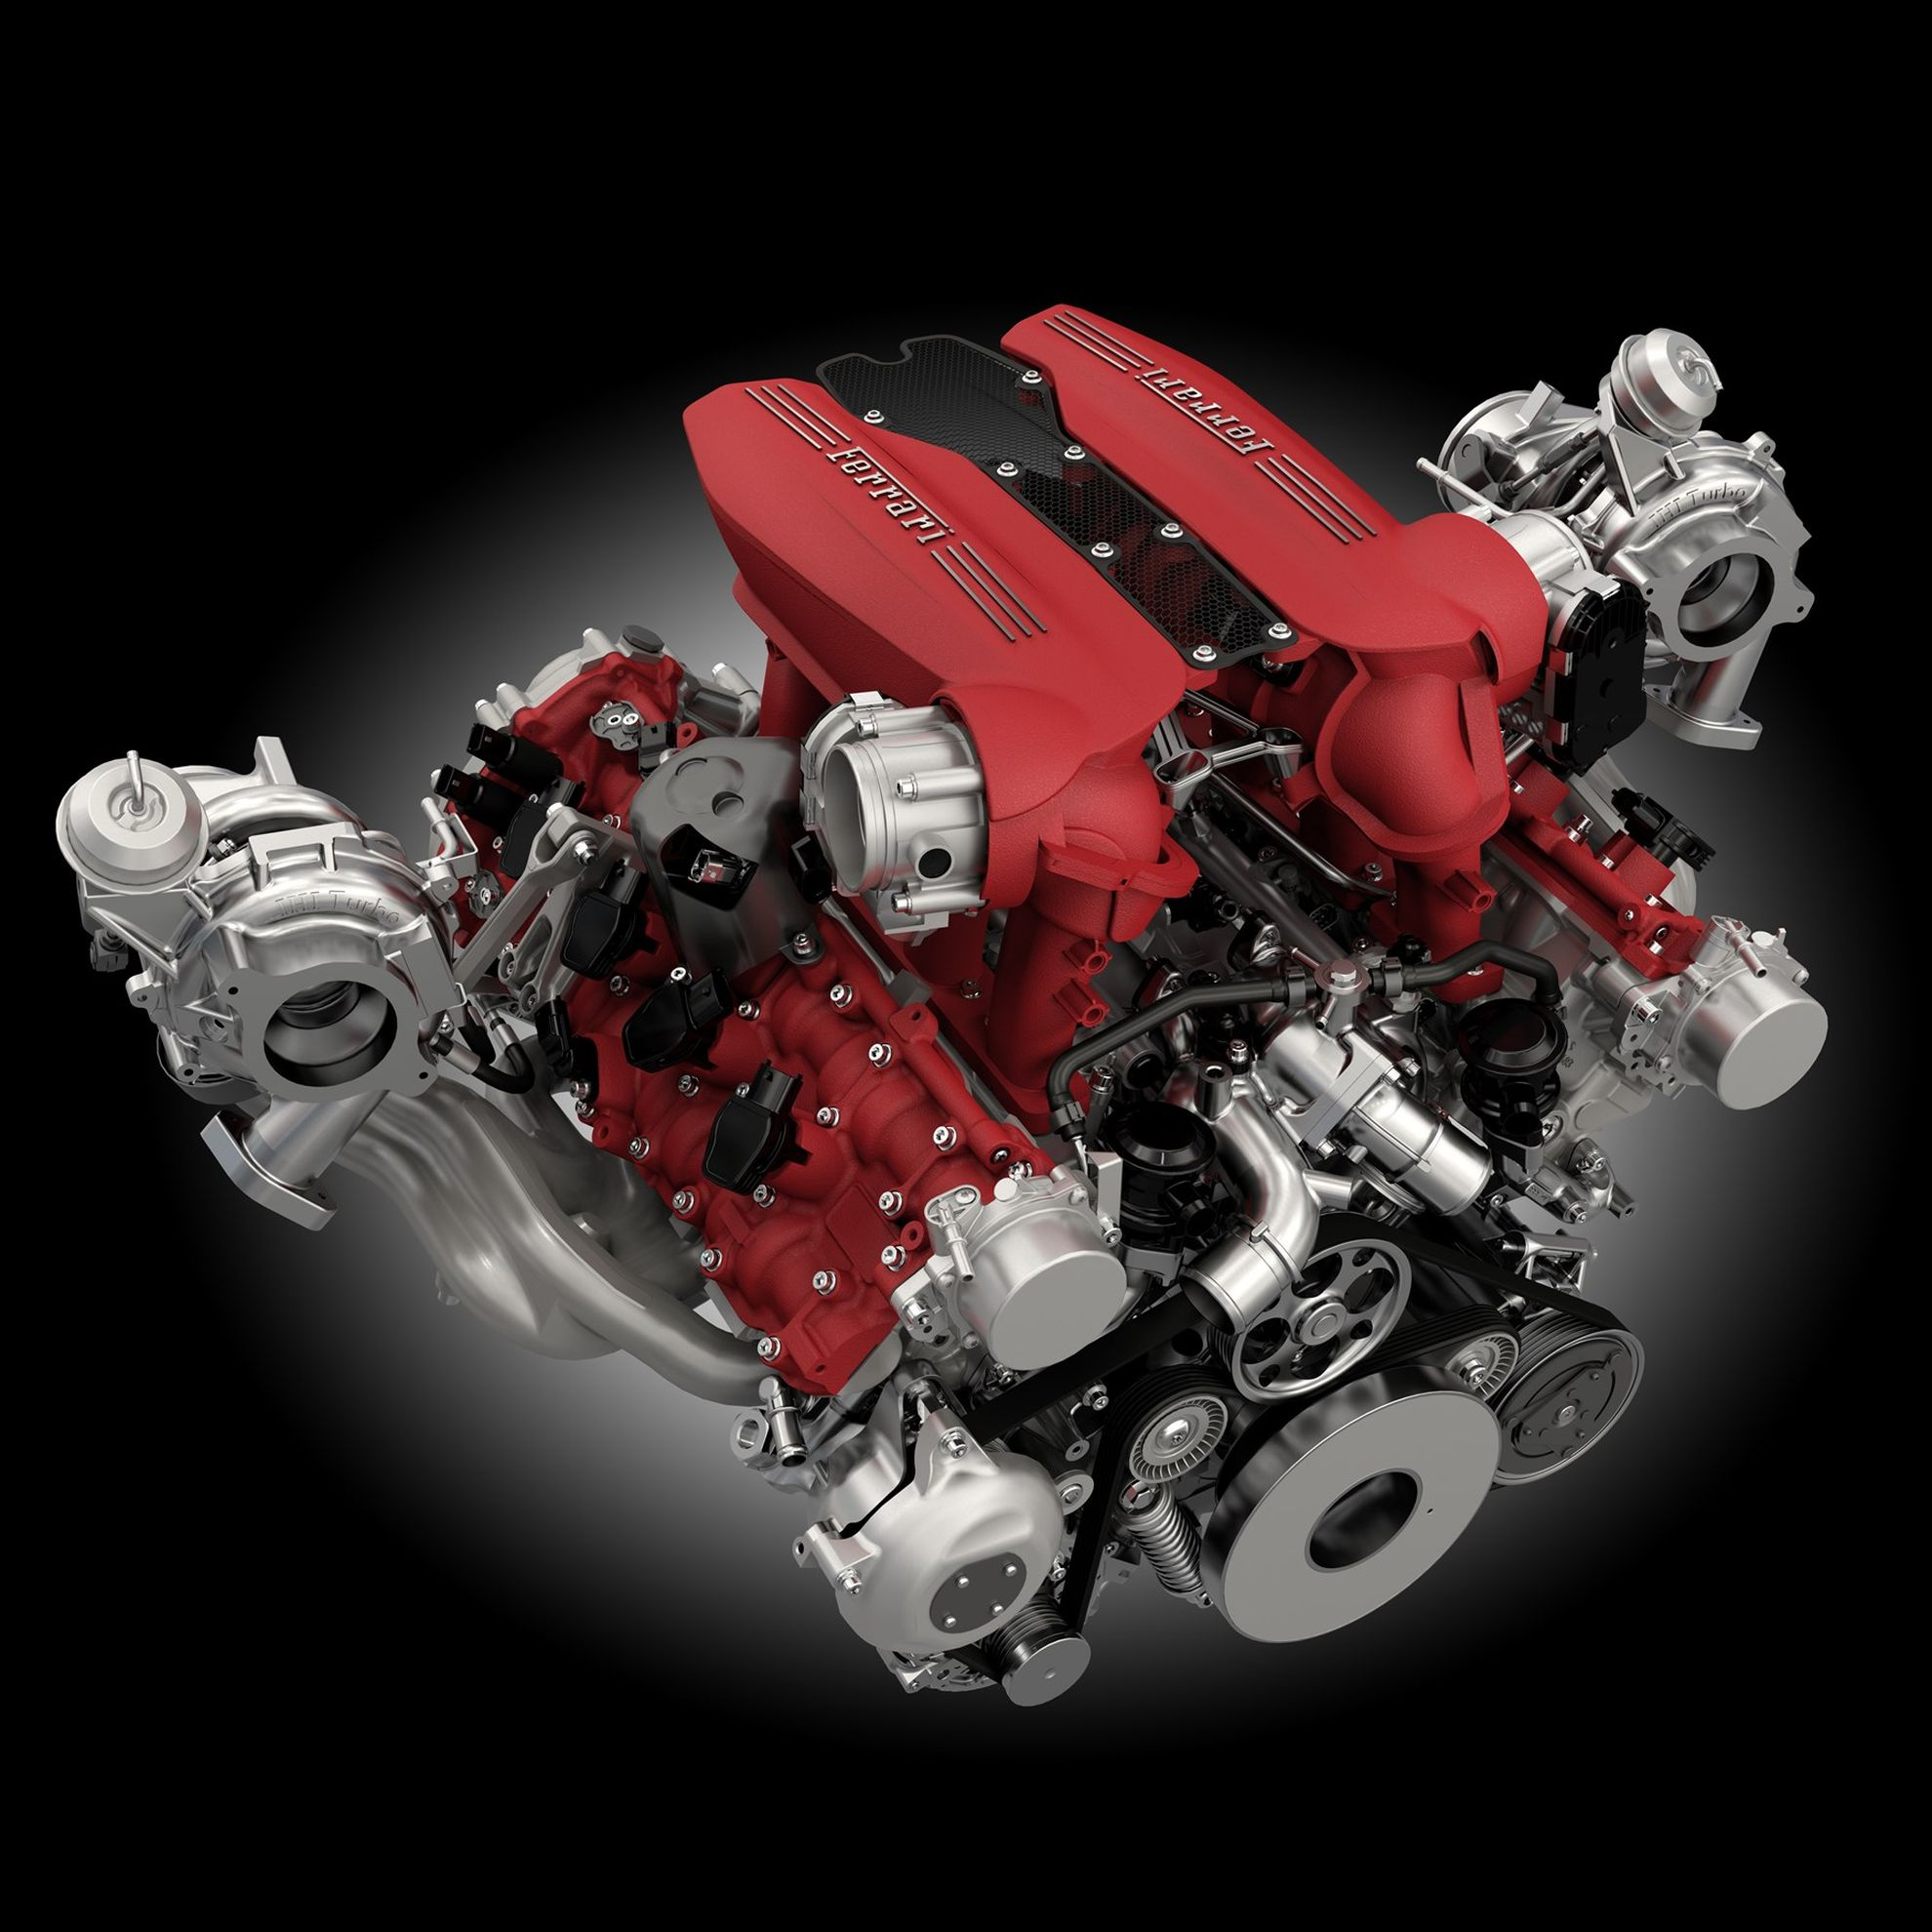 Ferrari-488-GTB-engine